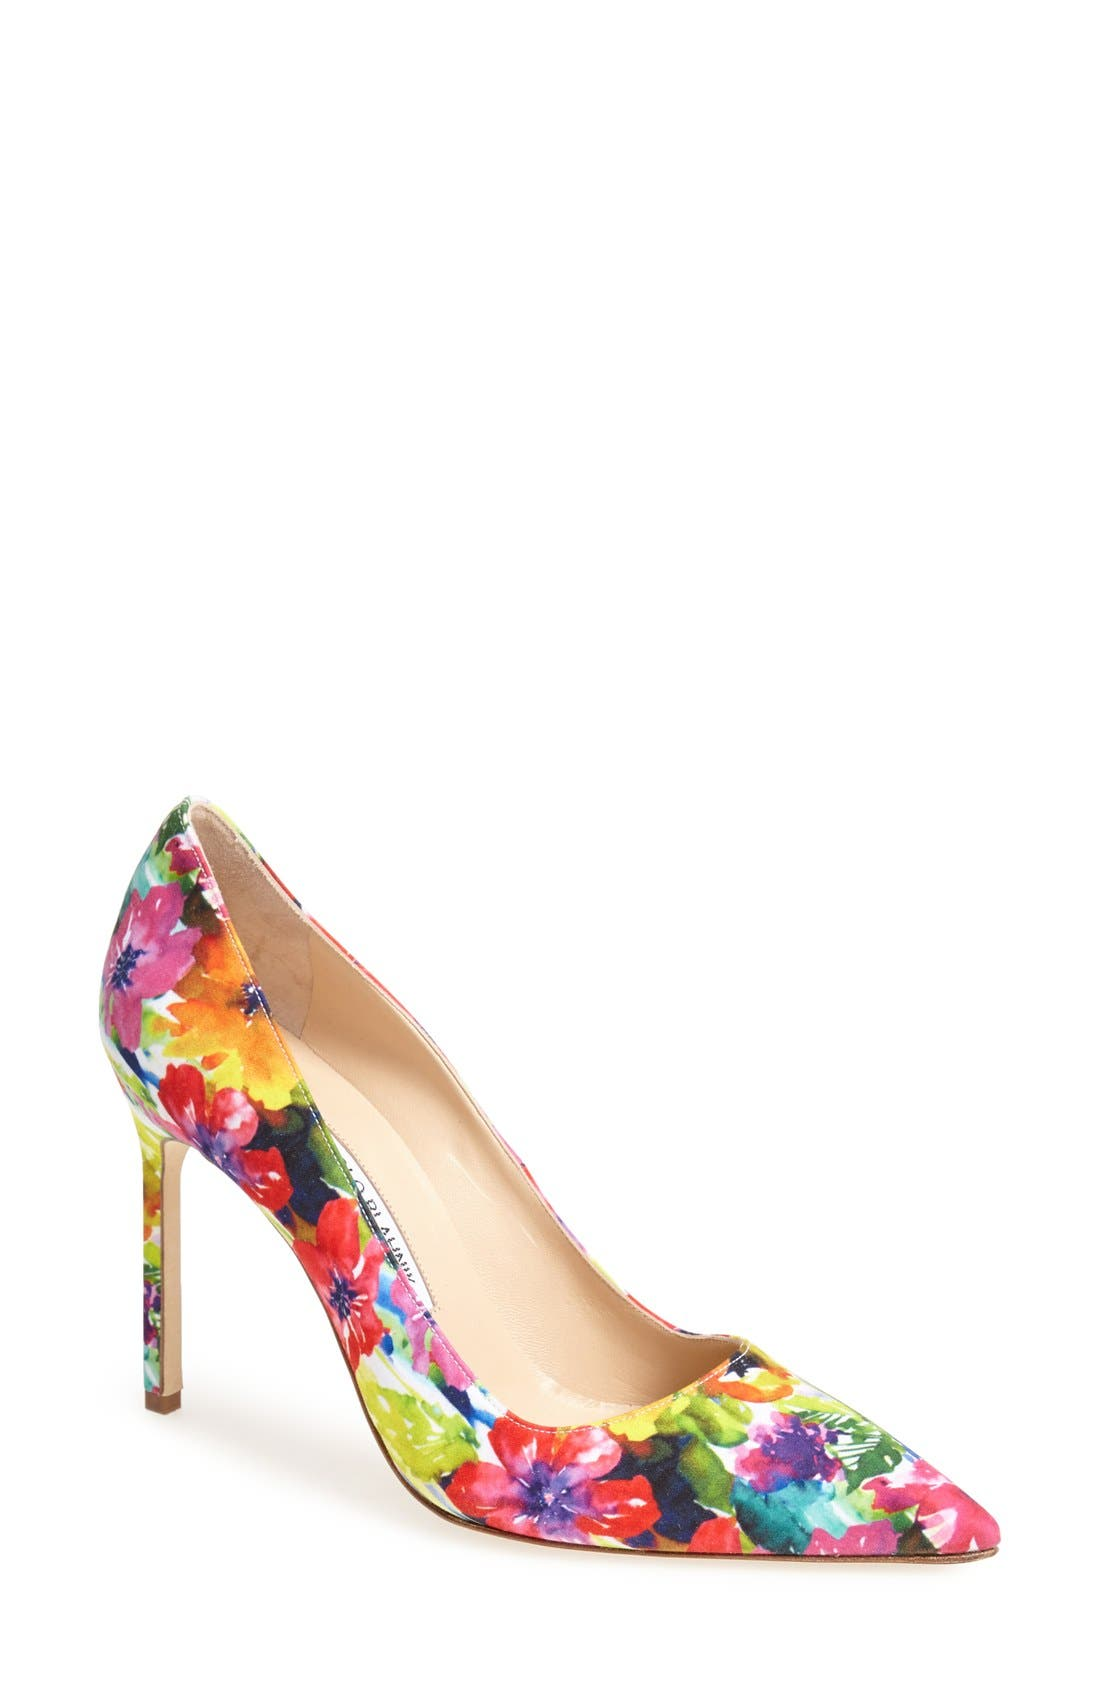 MANOLO BLAHNIK 'BB' Pump, Main, color, 650